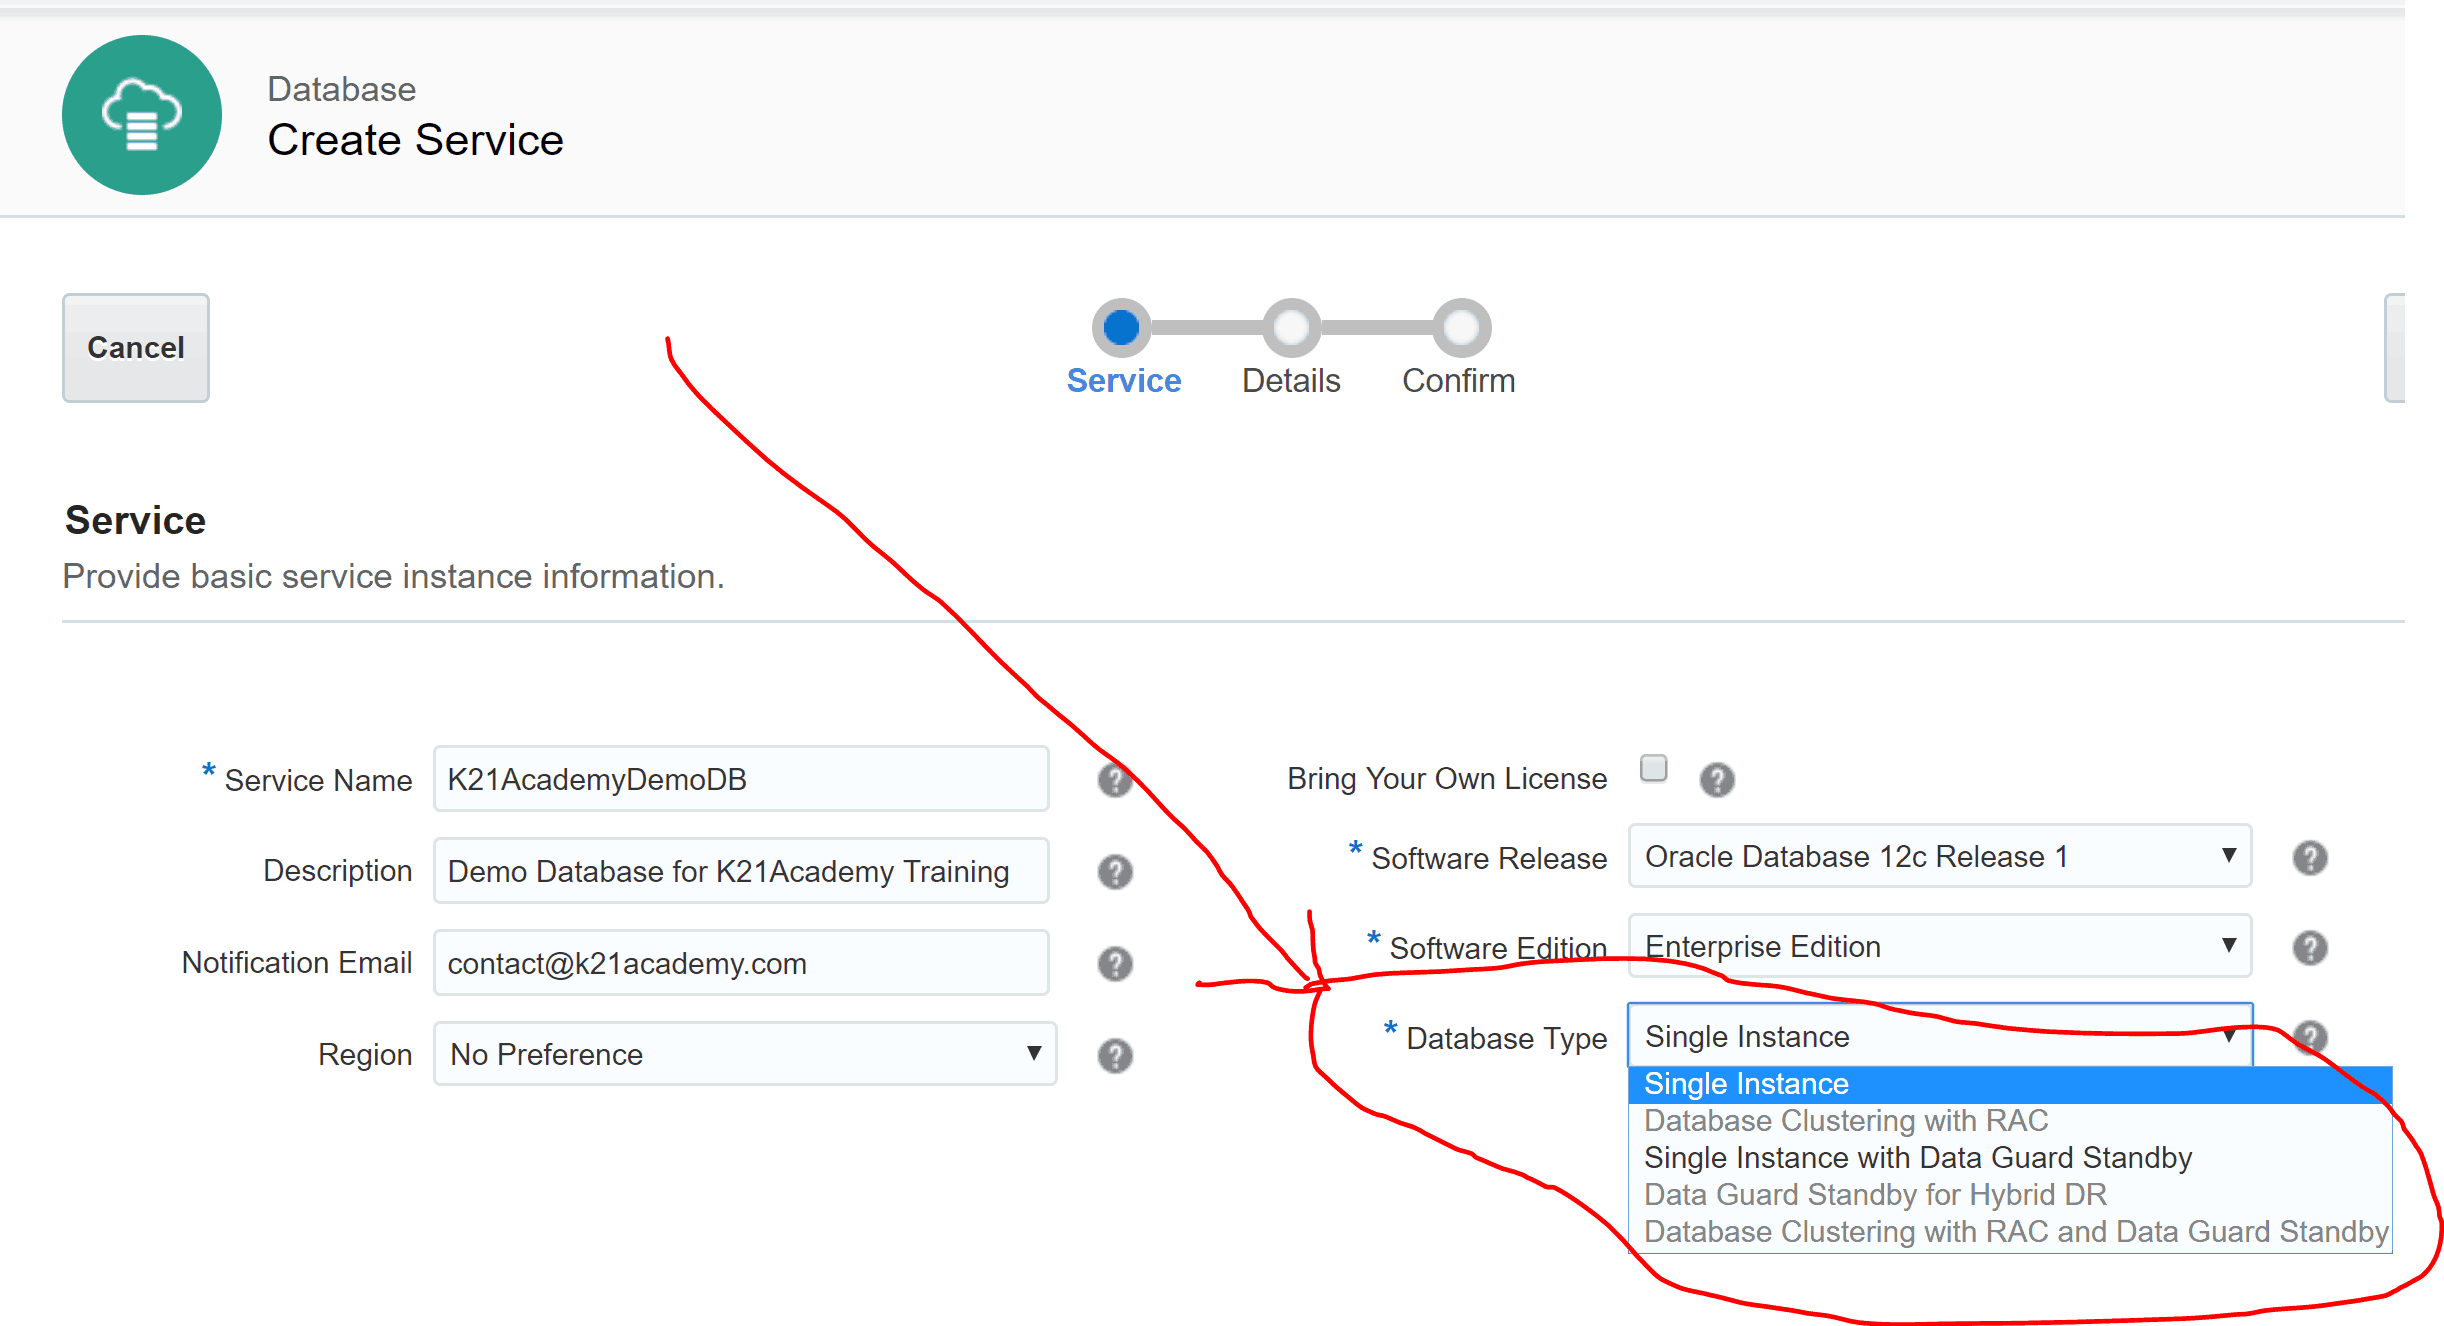 Choose from Database Type